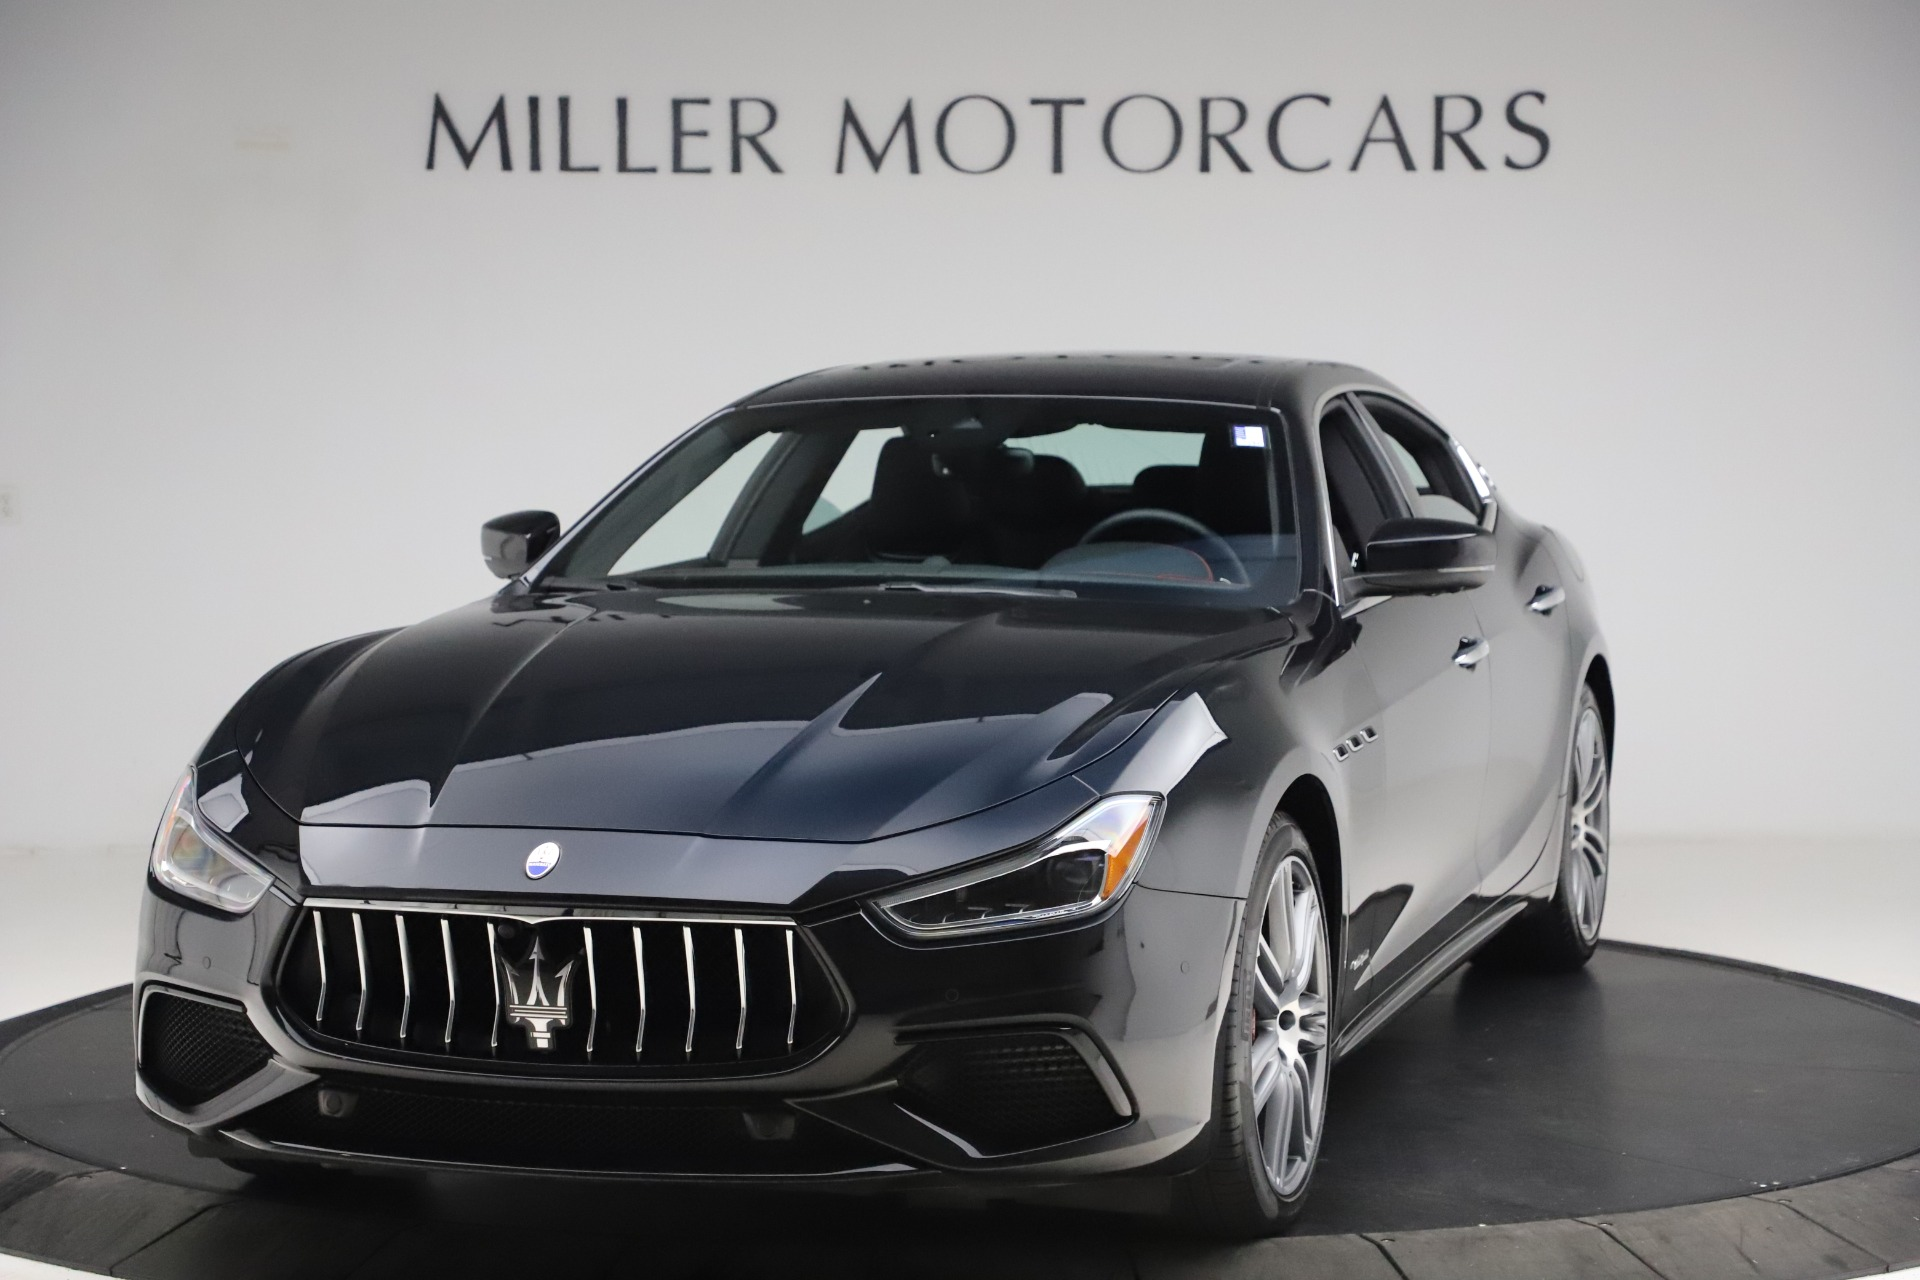 New 2020 Maserati Ghibli S Q4 GranSport for sale $70,331 at Pagani of Greenwich in Greenwich CT 06830 1